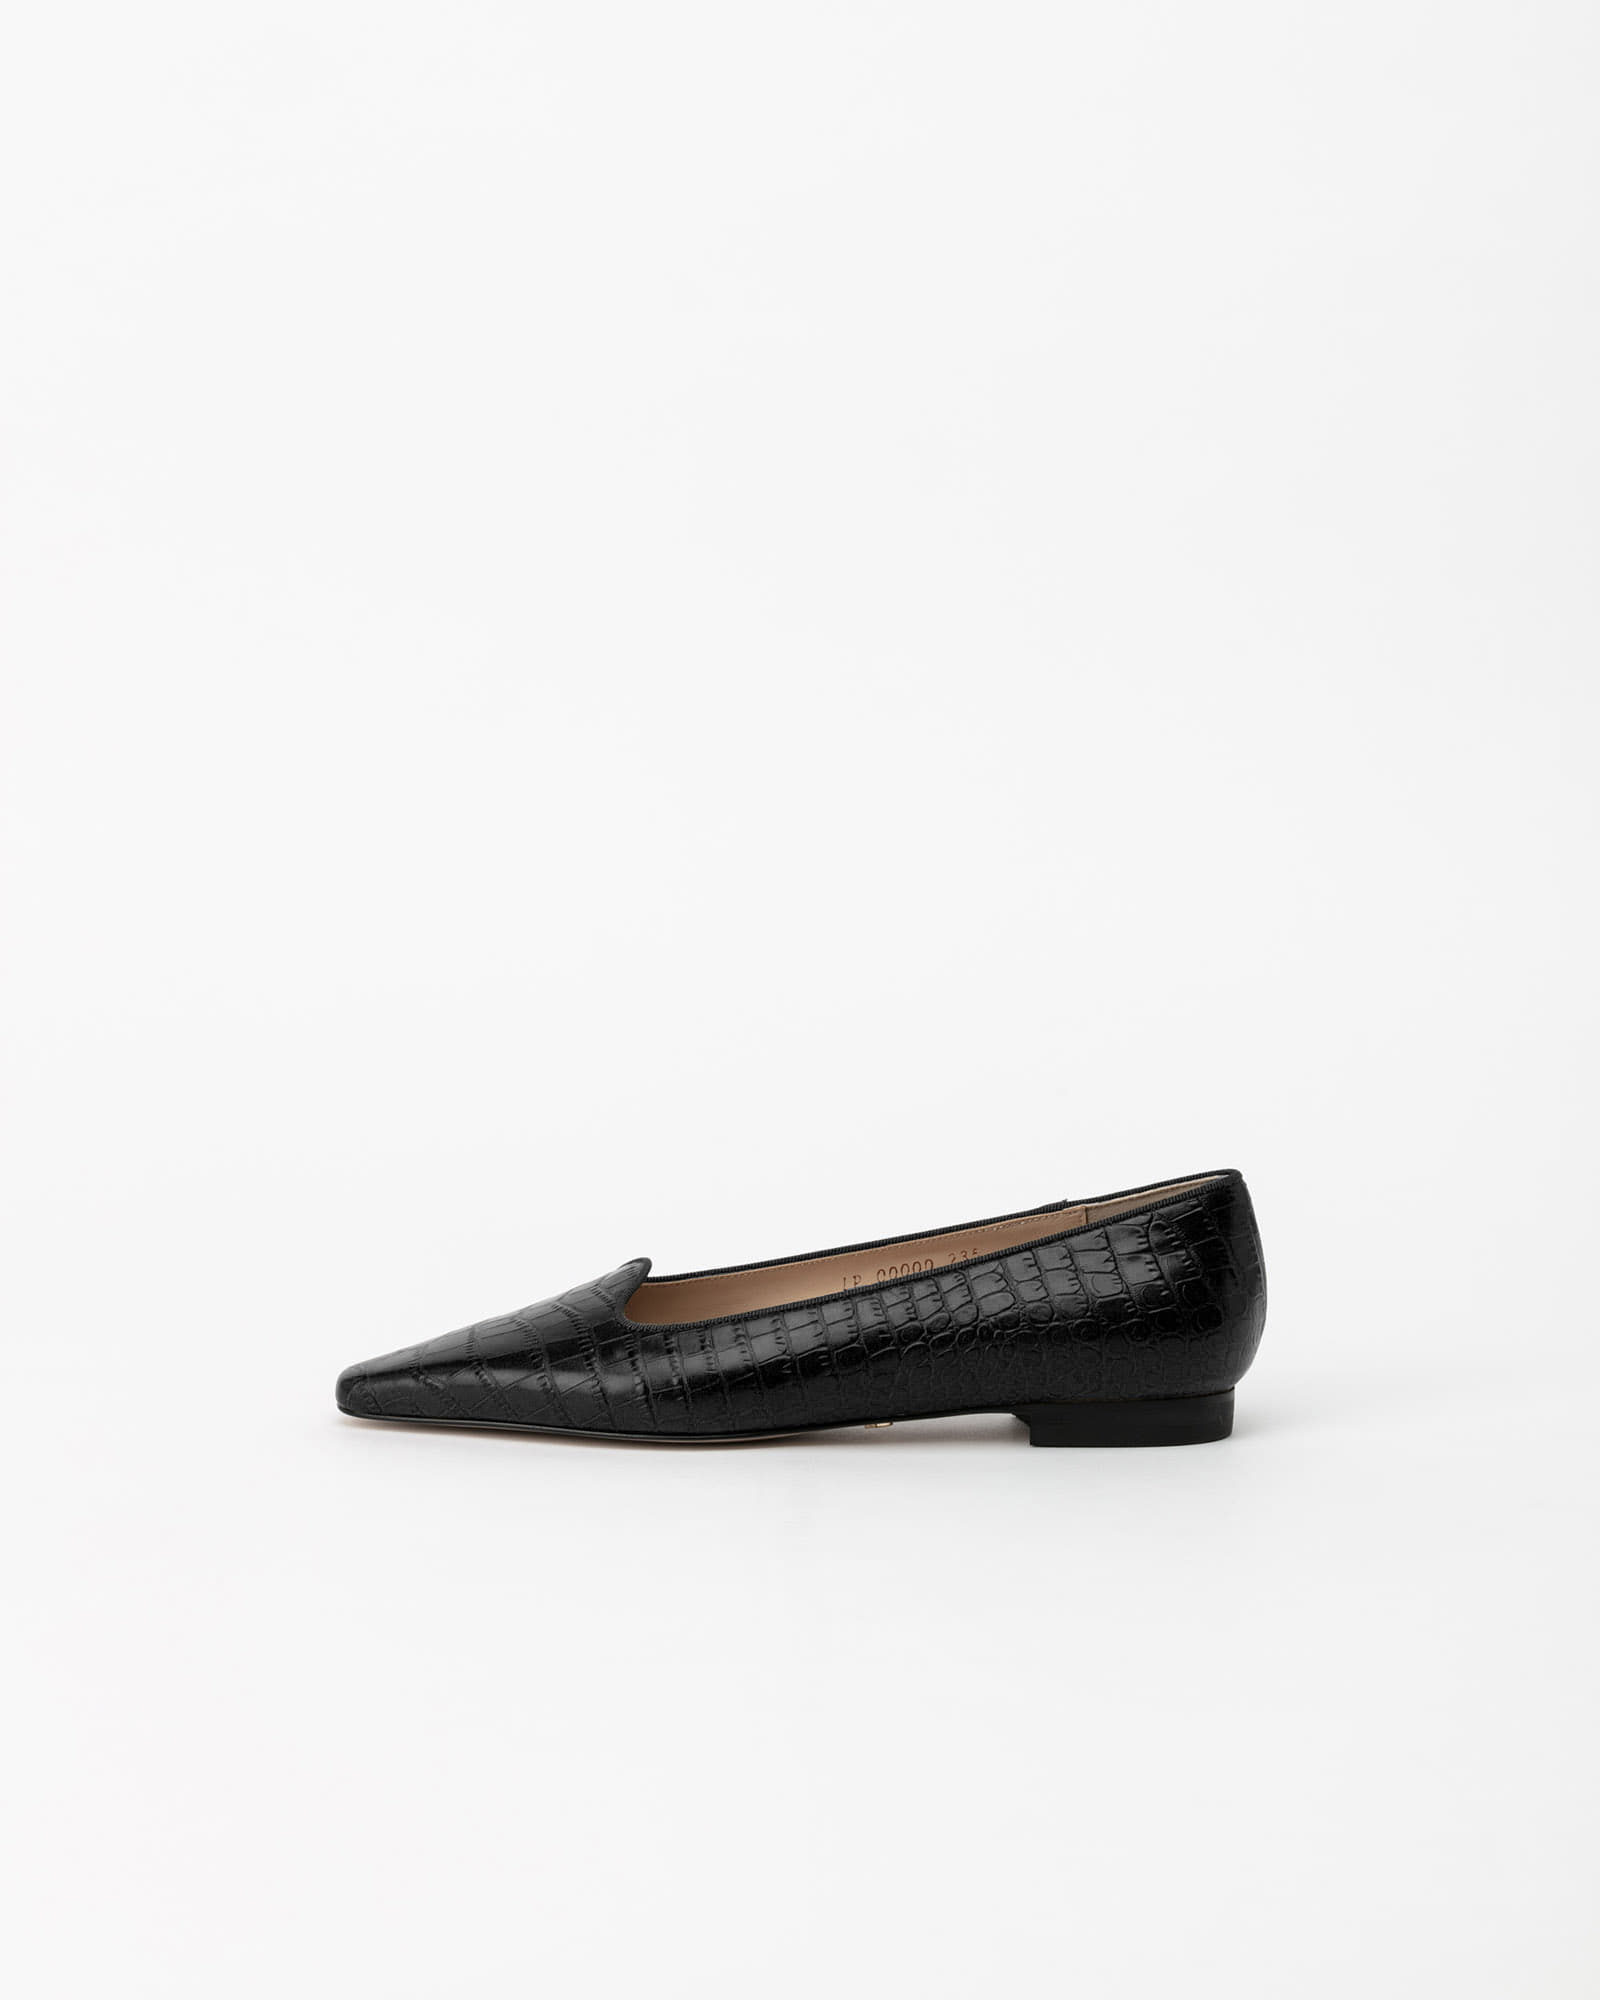 Tanoa Flat Shoes in Black Croco Prints